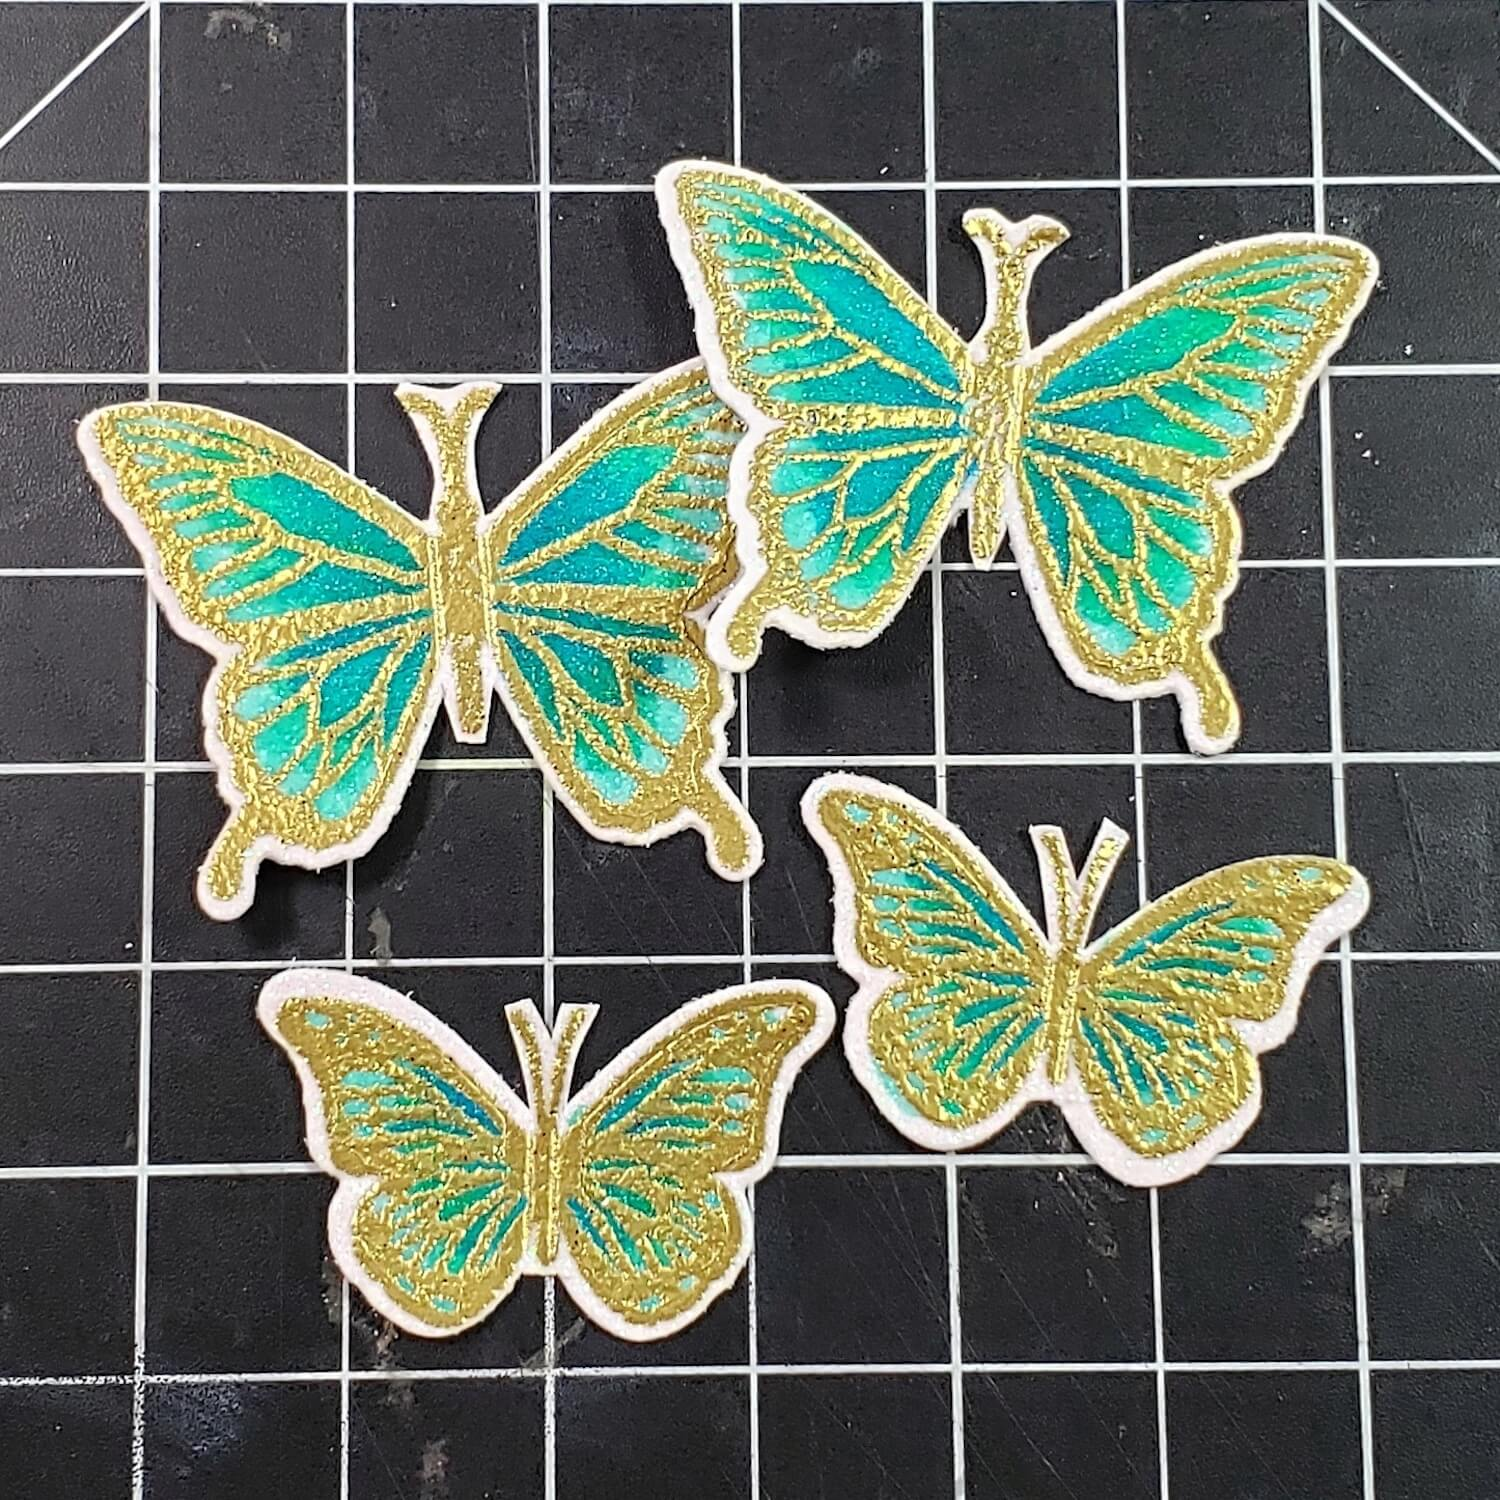 Stamped, embossed, and colored butterflies